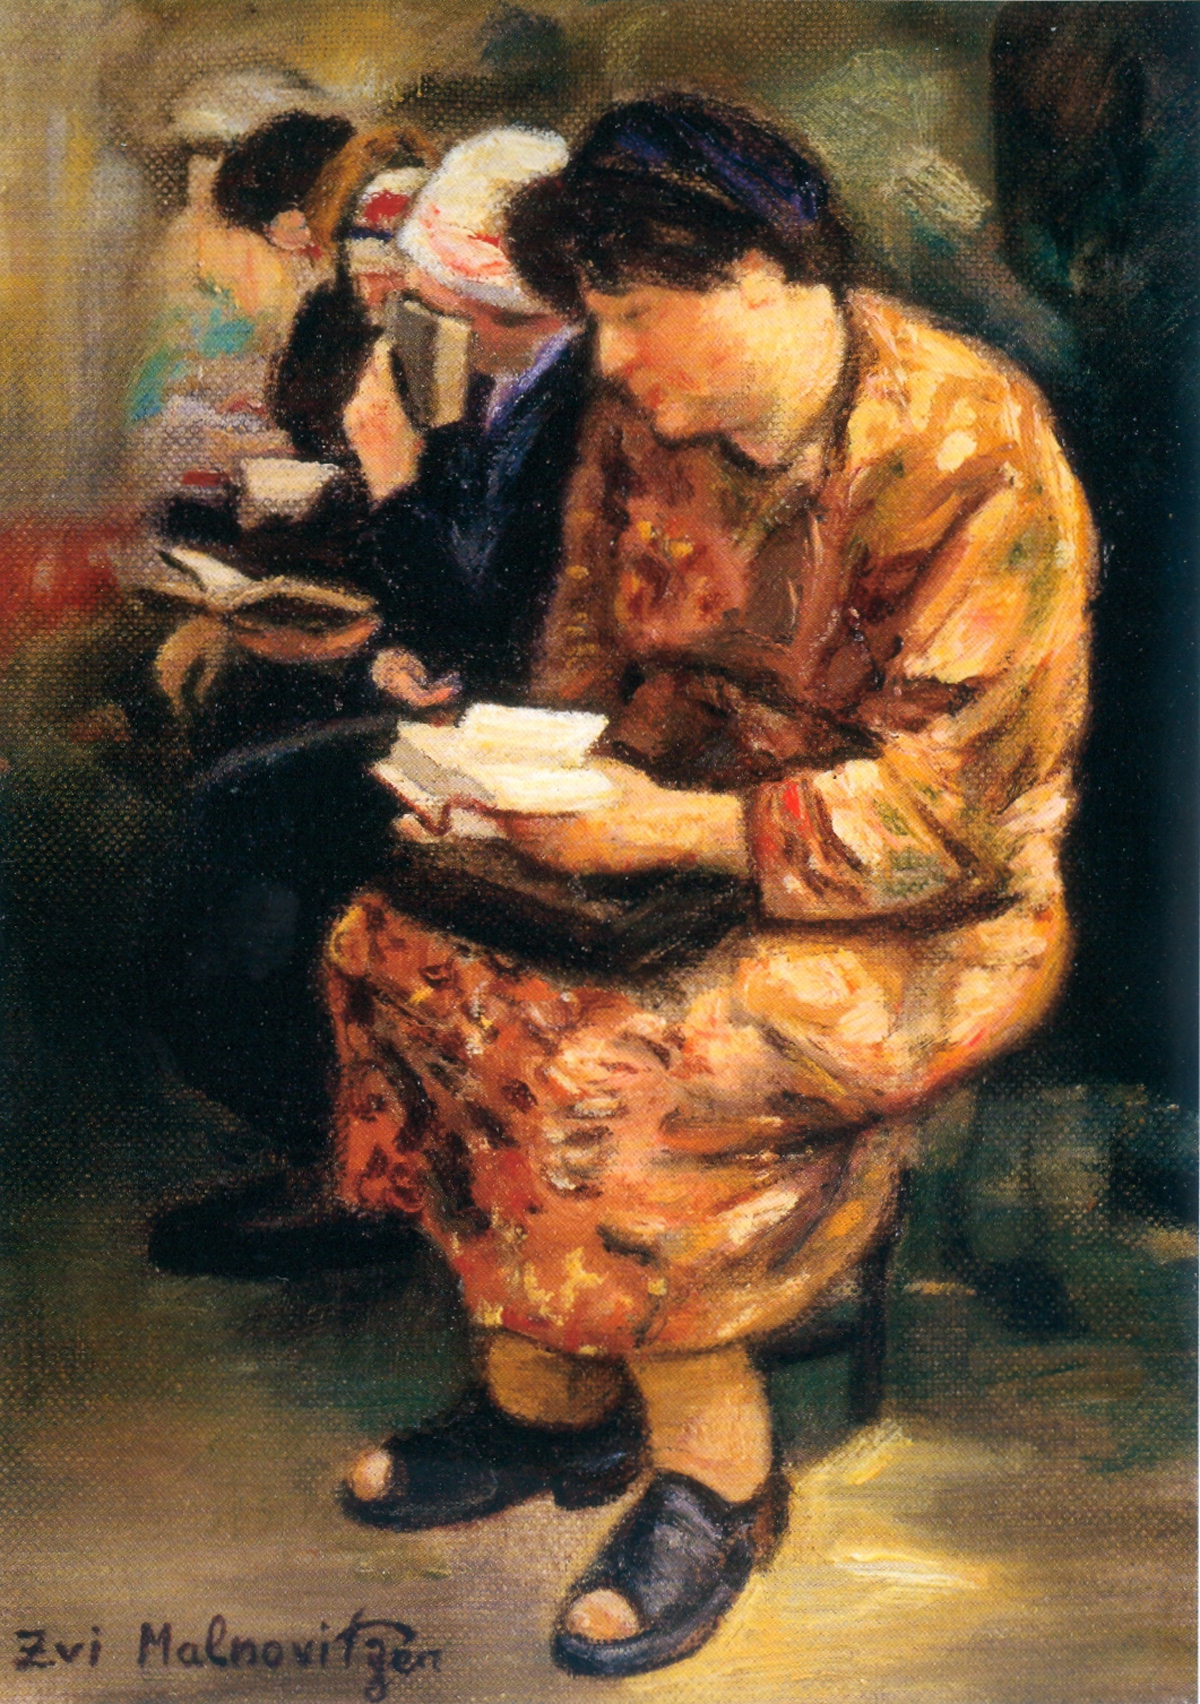 Women Praying (2006), oil on canvas by Zvi Malnovitzer Private Collection, New York